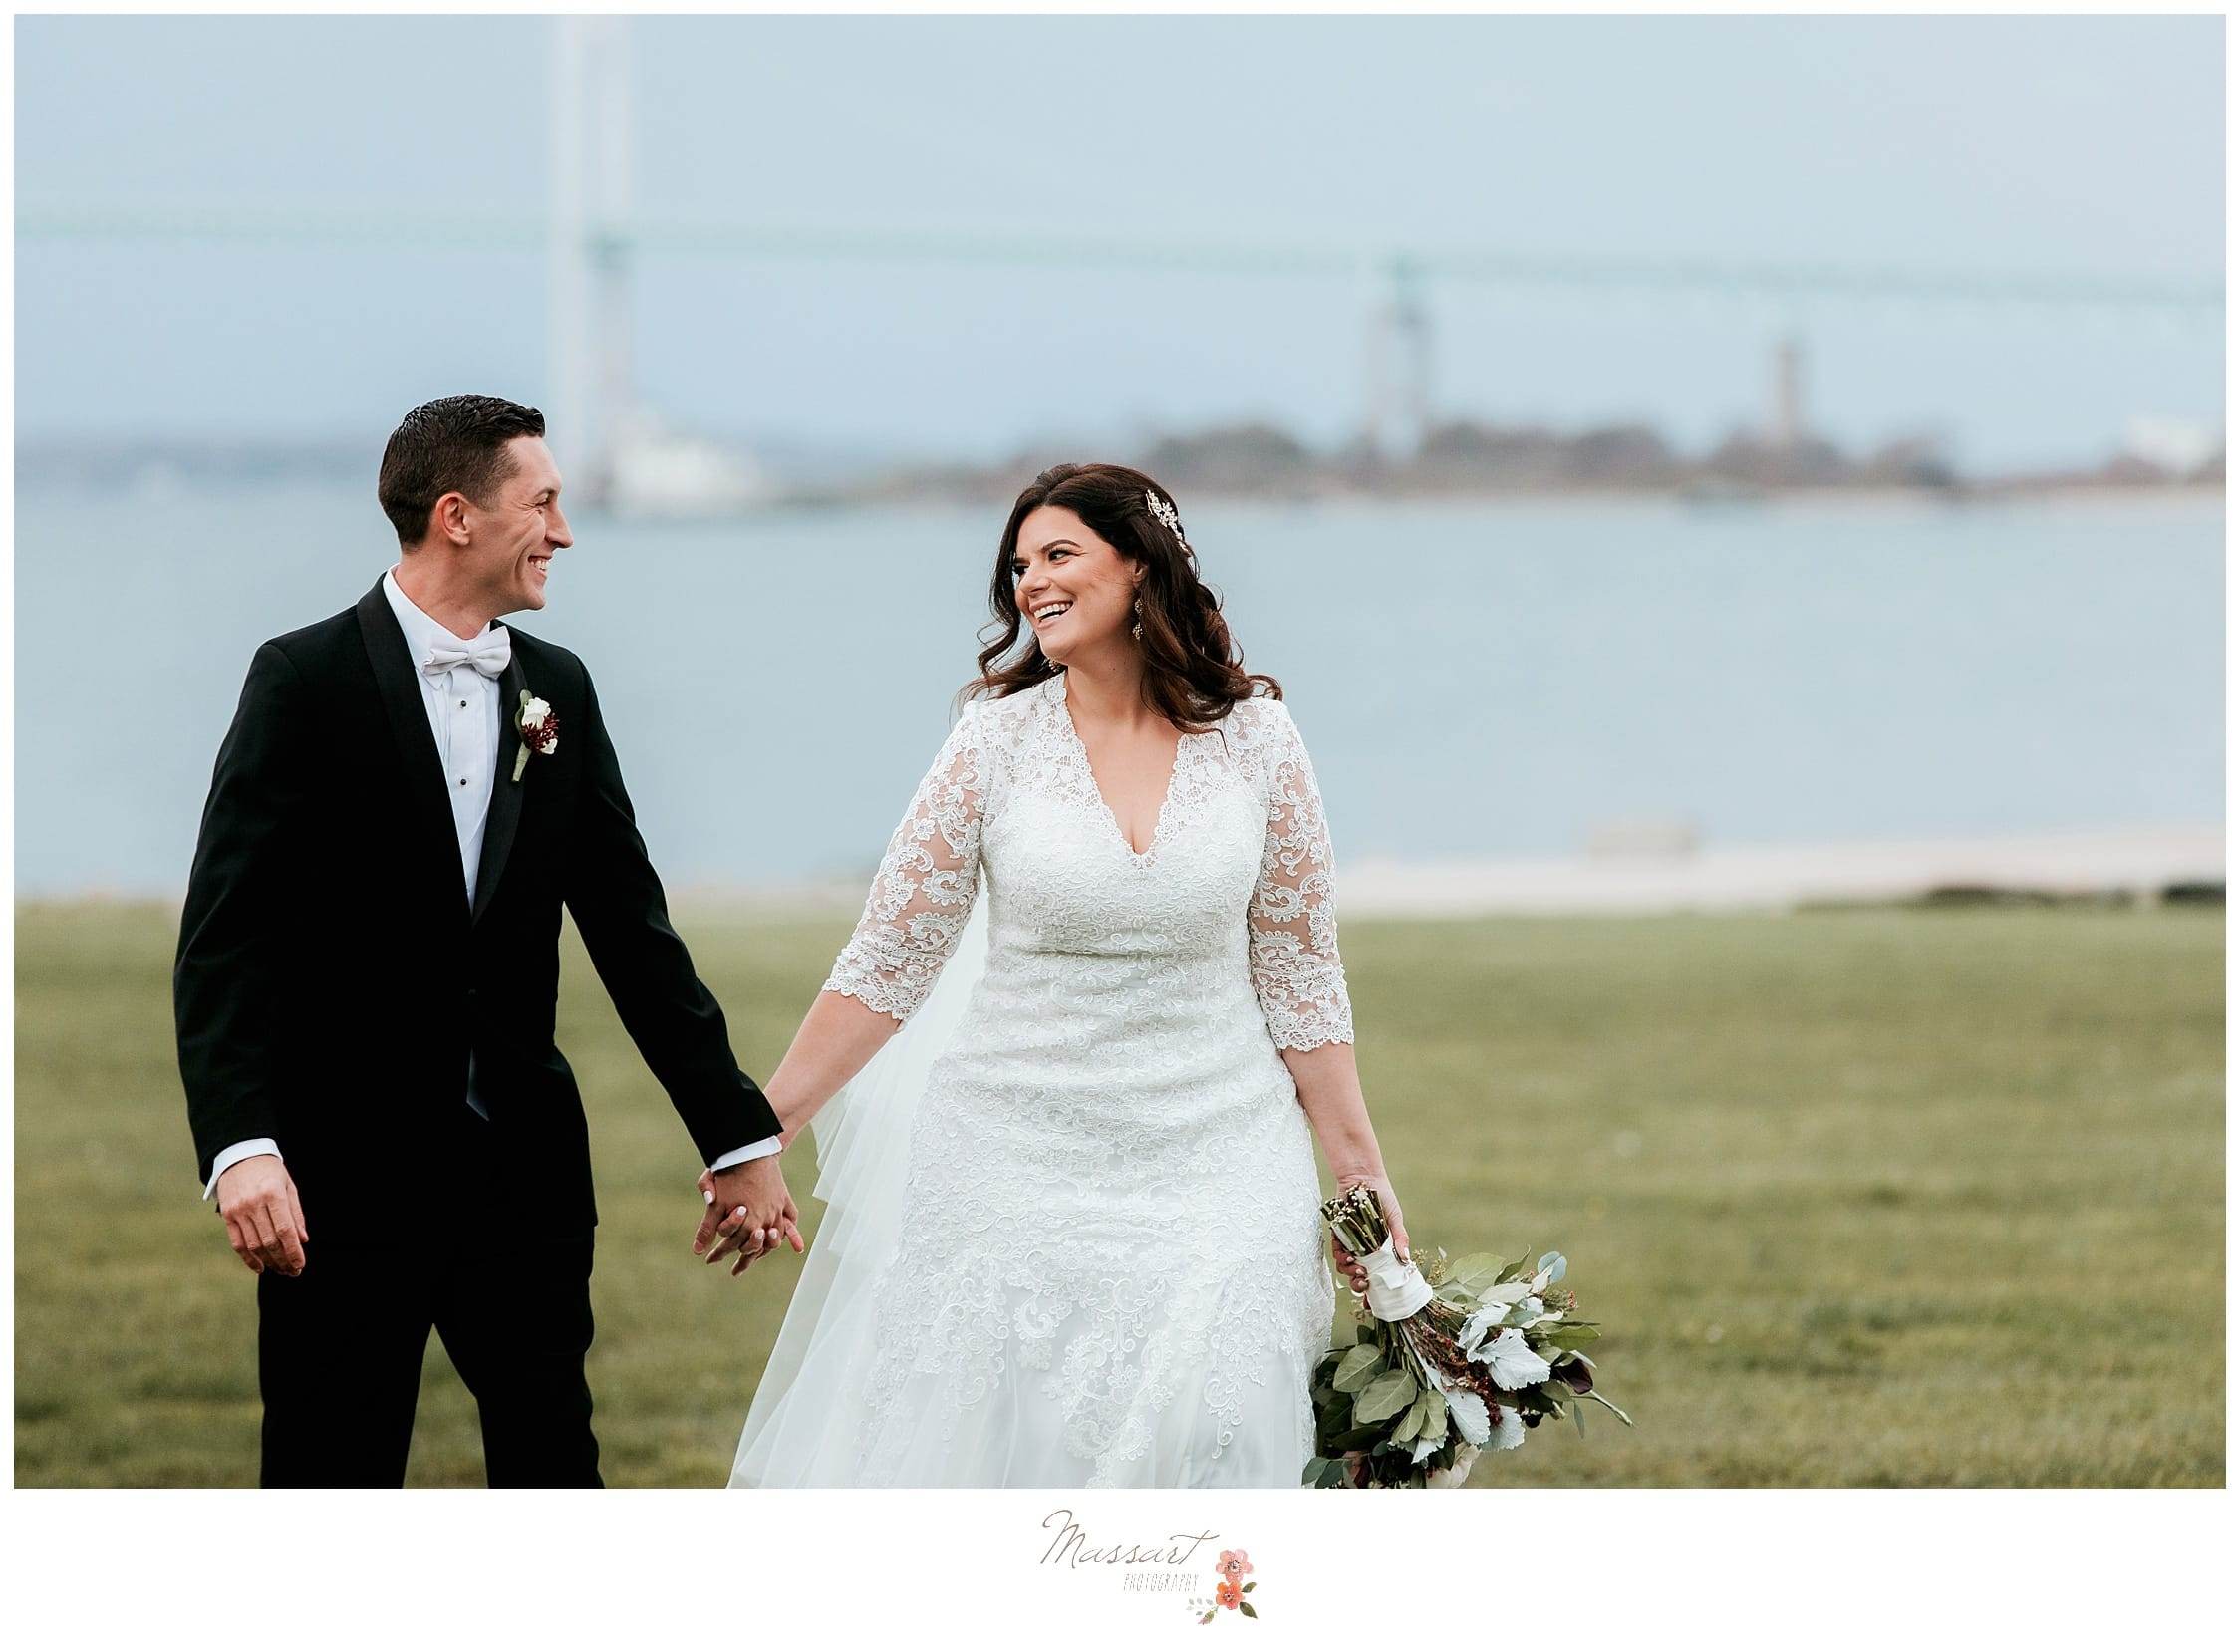 Bride and groom photographs at Fort Adams in Newport, RI by Massart Photographers